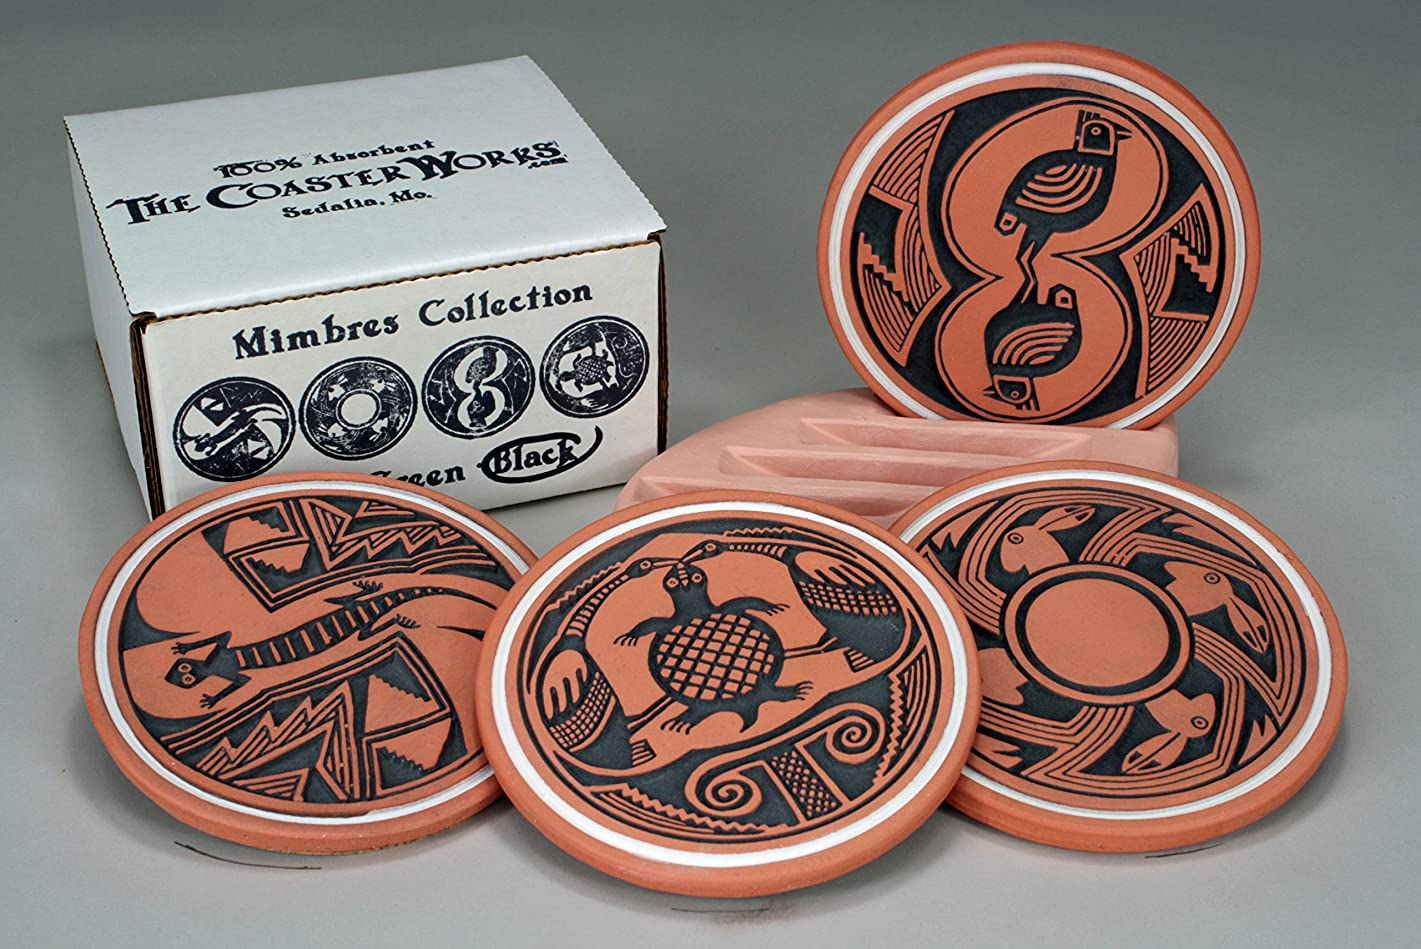 The Coaster Works: 100% Absorbent Coasters -- Mimbres